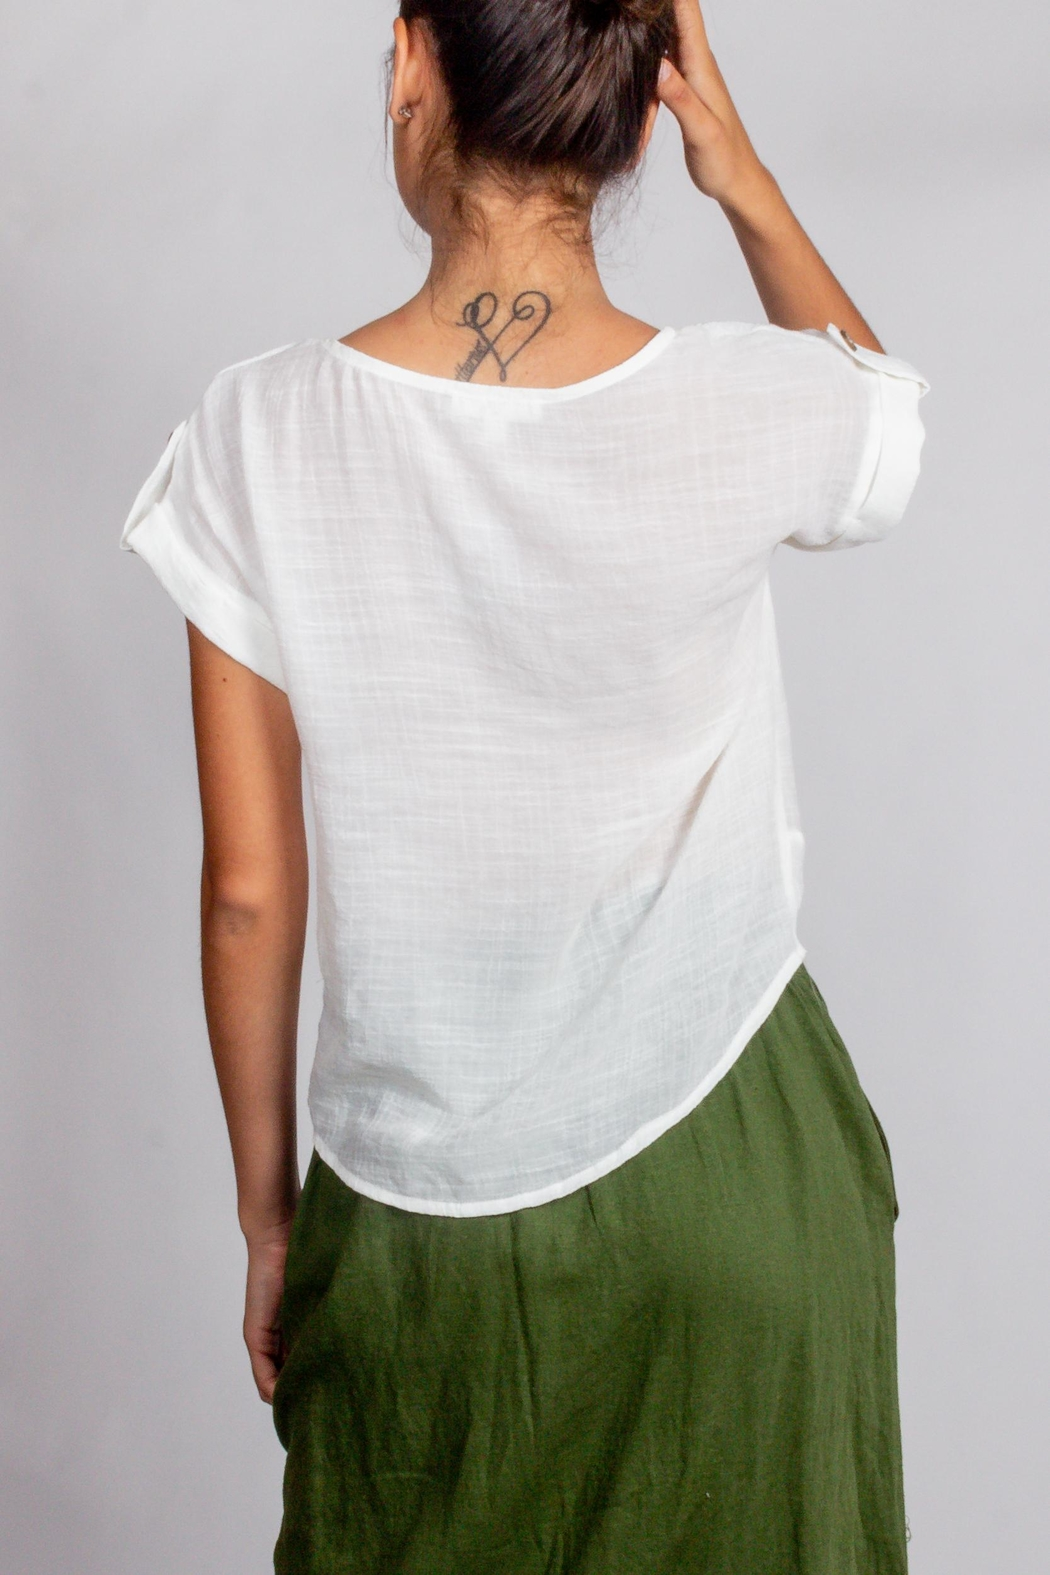 Blu Pepper White-Twist-Front Short-Sleeve Top - Front Full Image